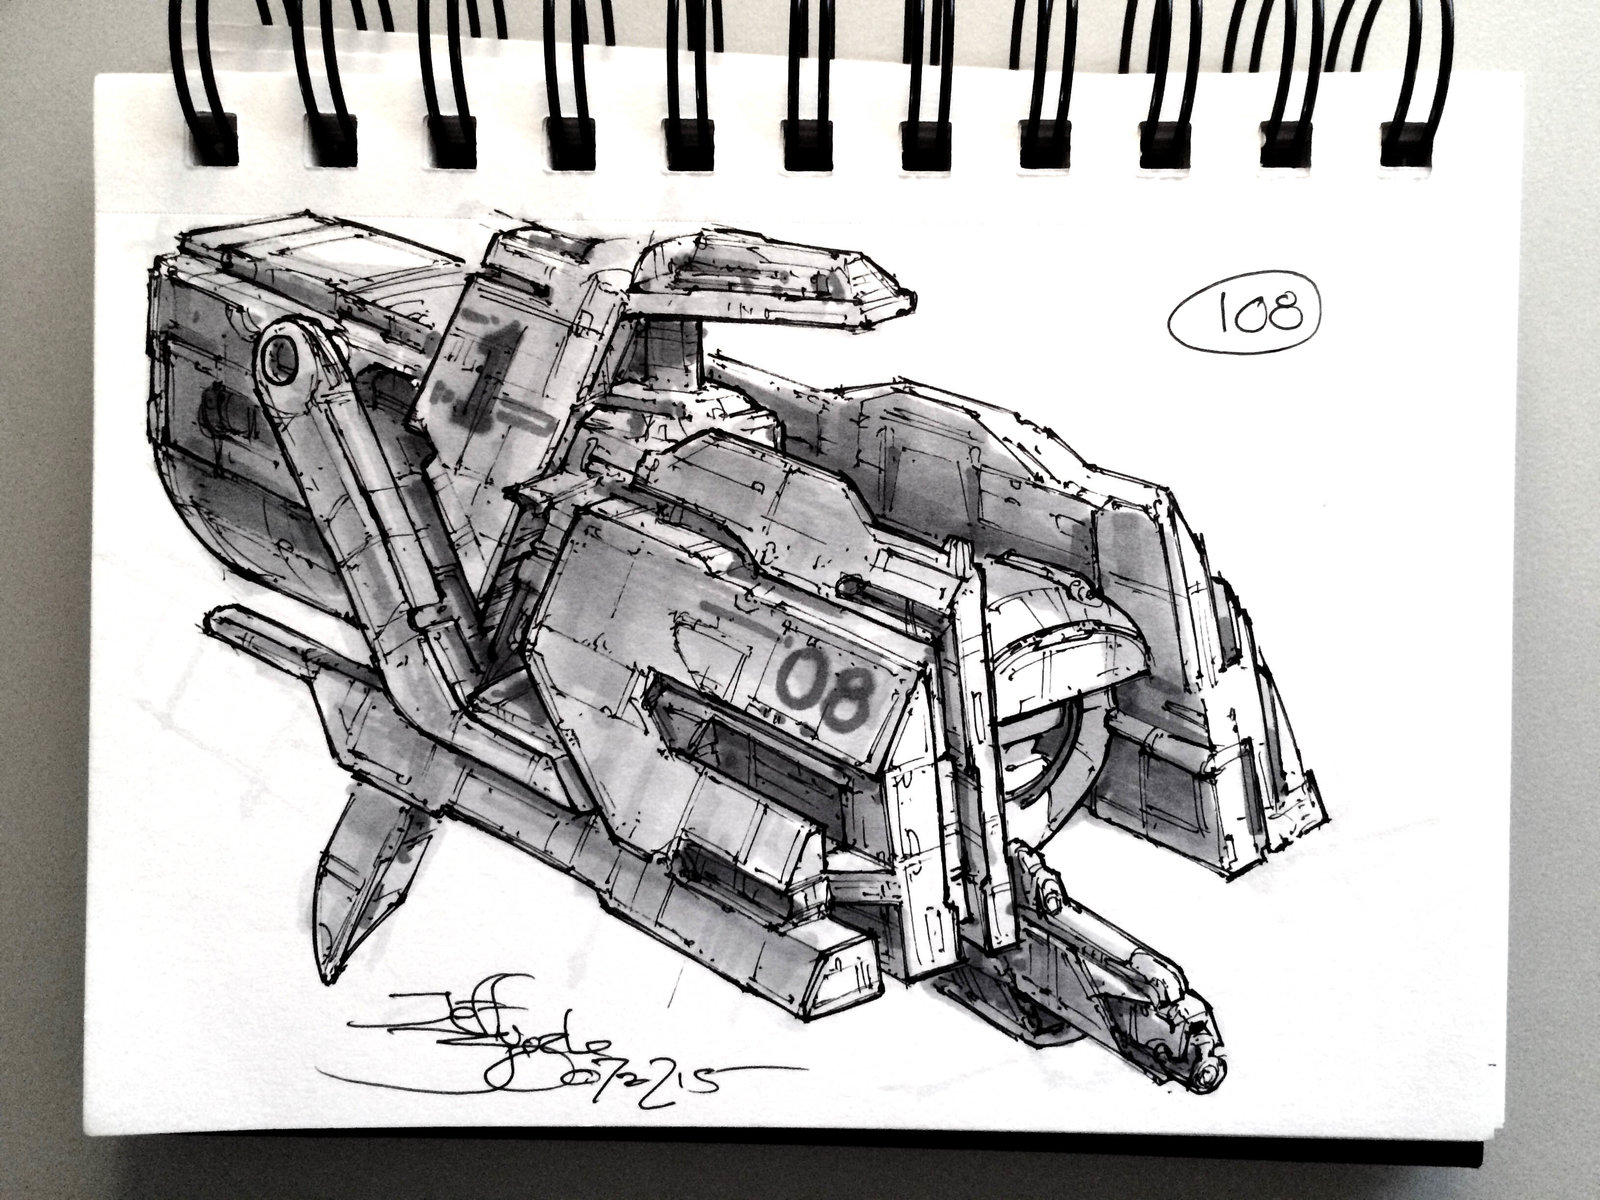 SpaceshipADay 108